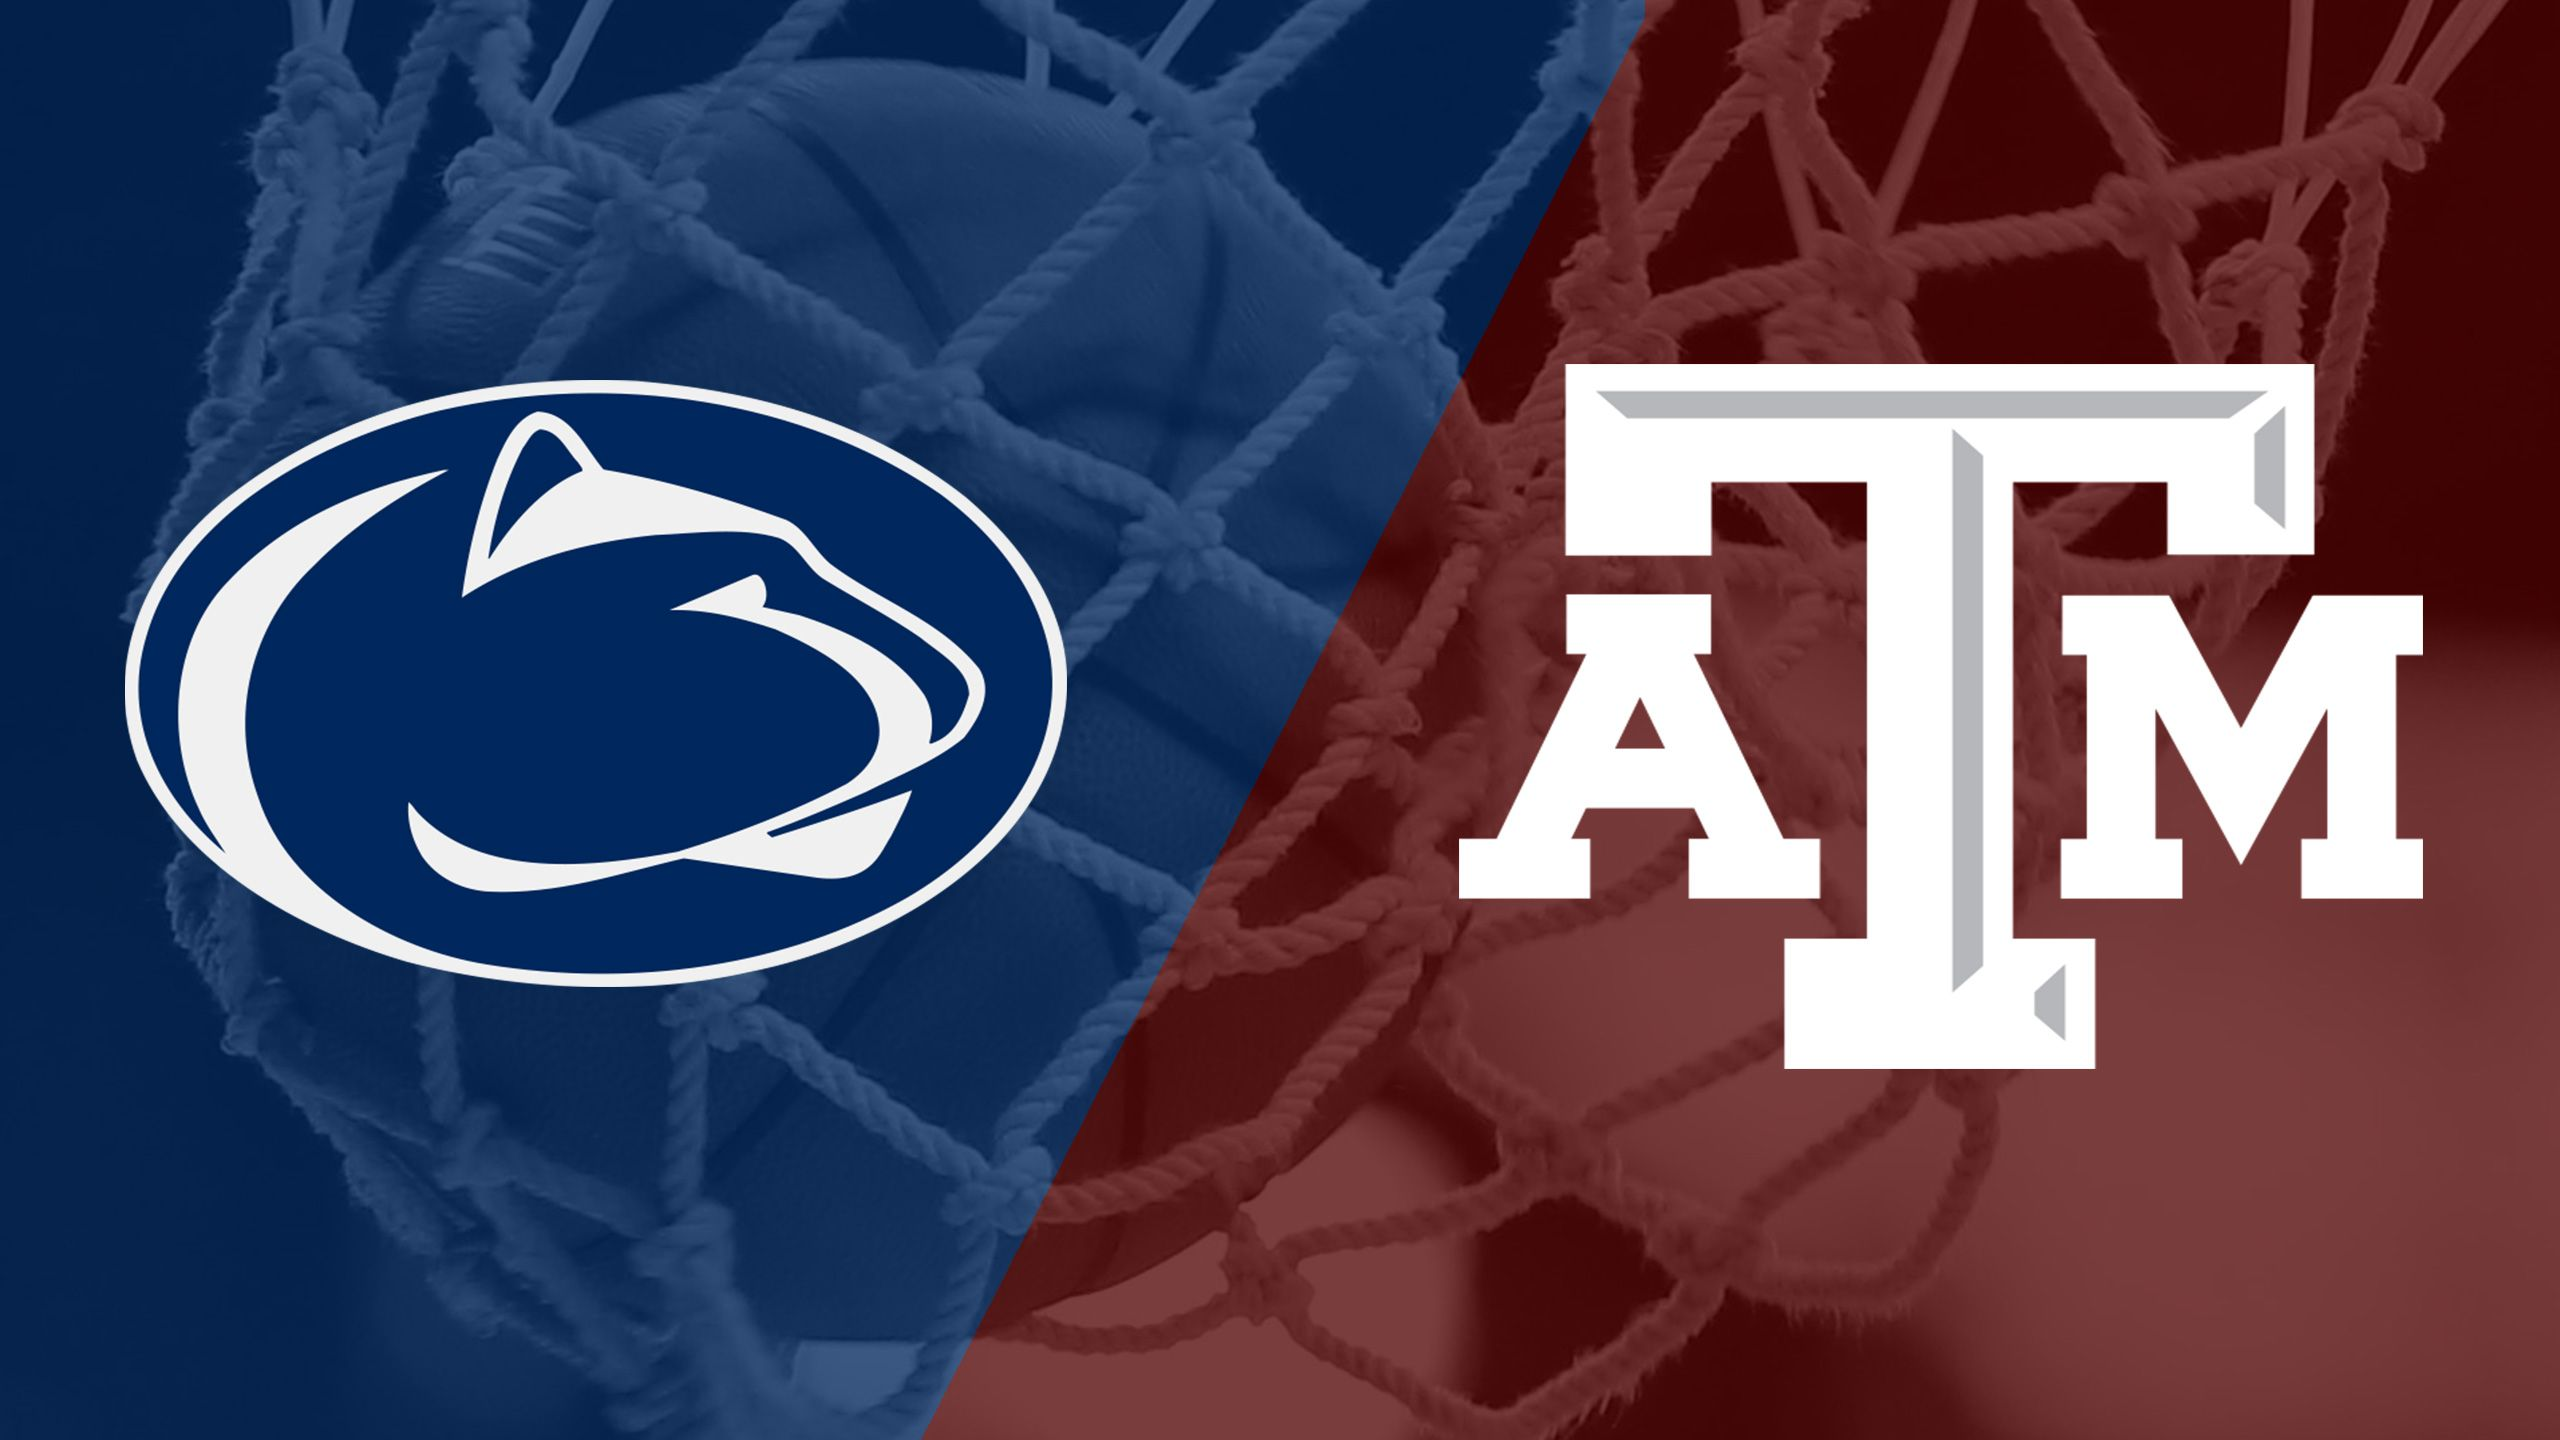 Penn State vs. #16 Texas A&M (Championship) (Legends Classic) (re-air)